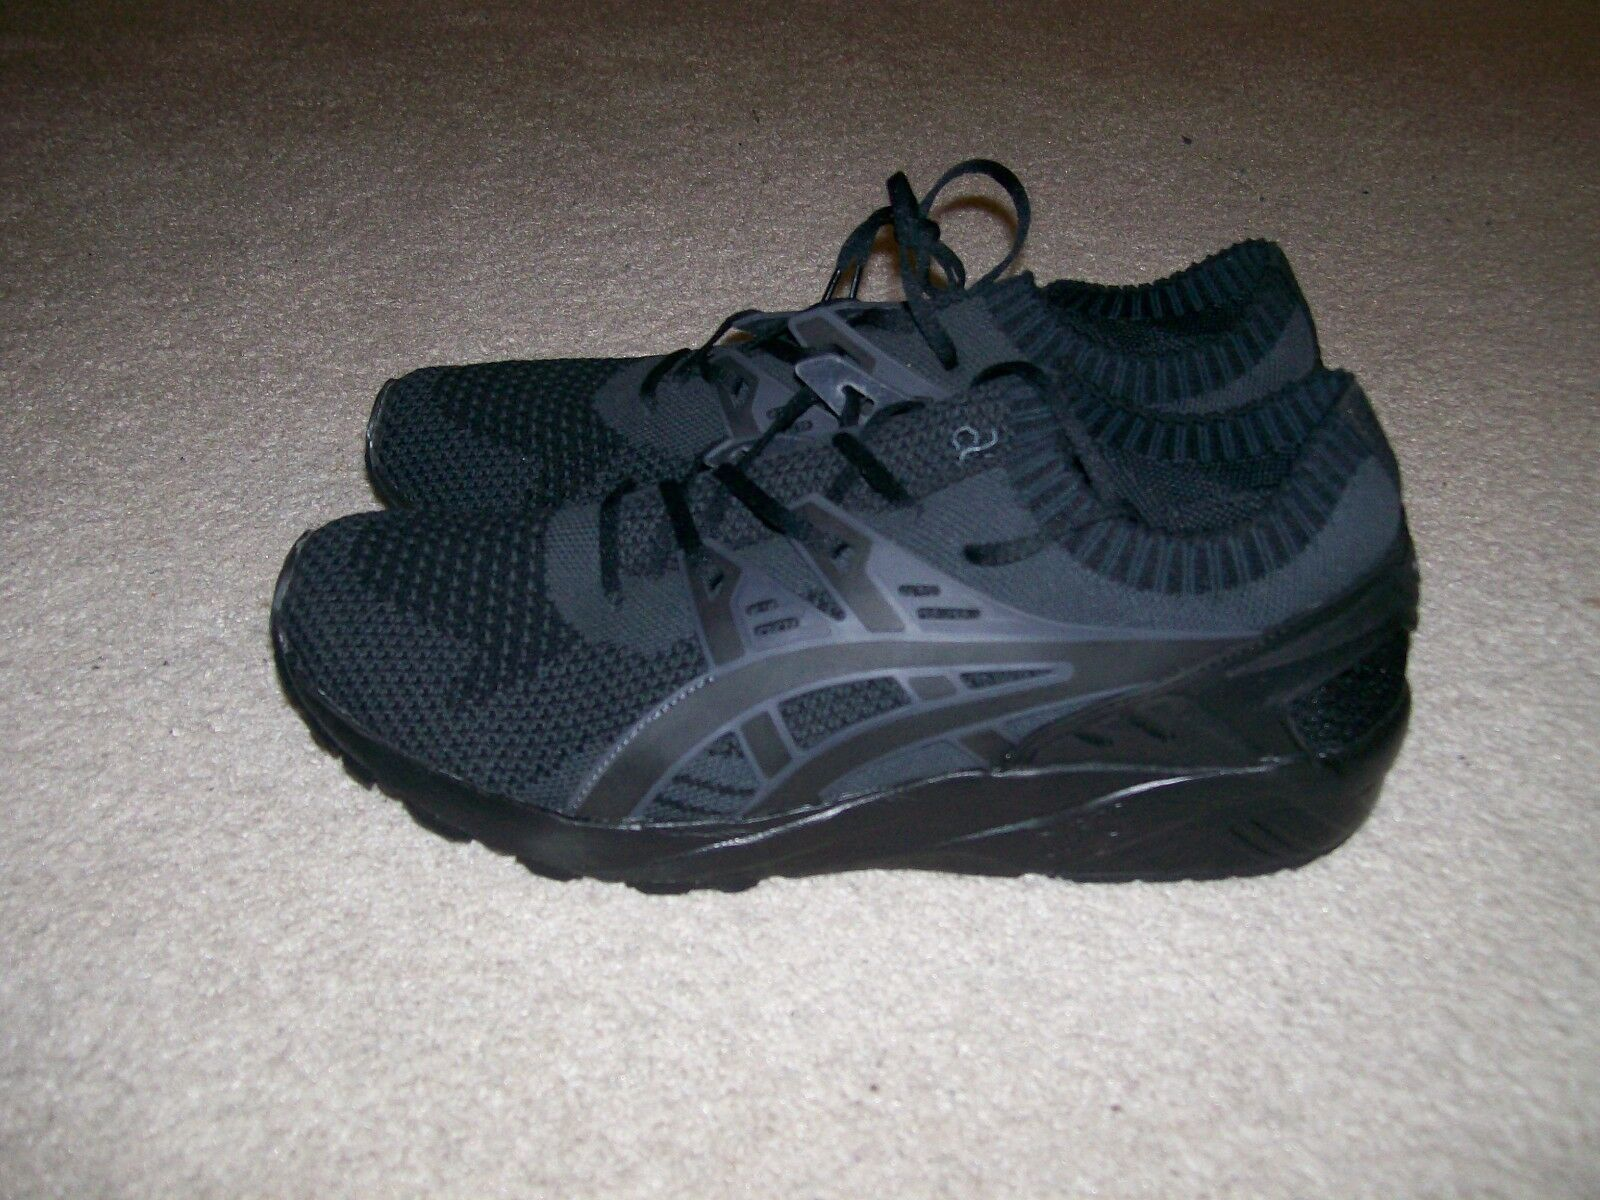 SZ 12 NEW hommes ASICS Gel-Kayano Trainer Running Knit Low noir Gris Casual Chaussures